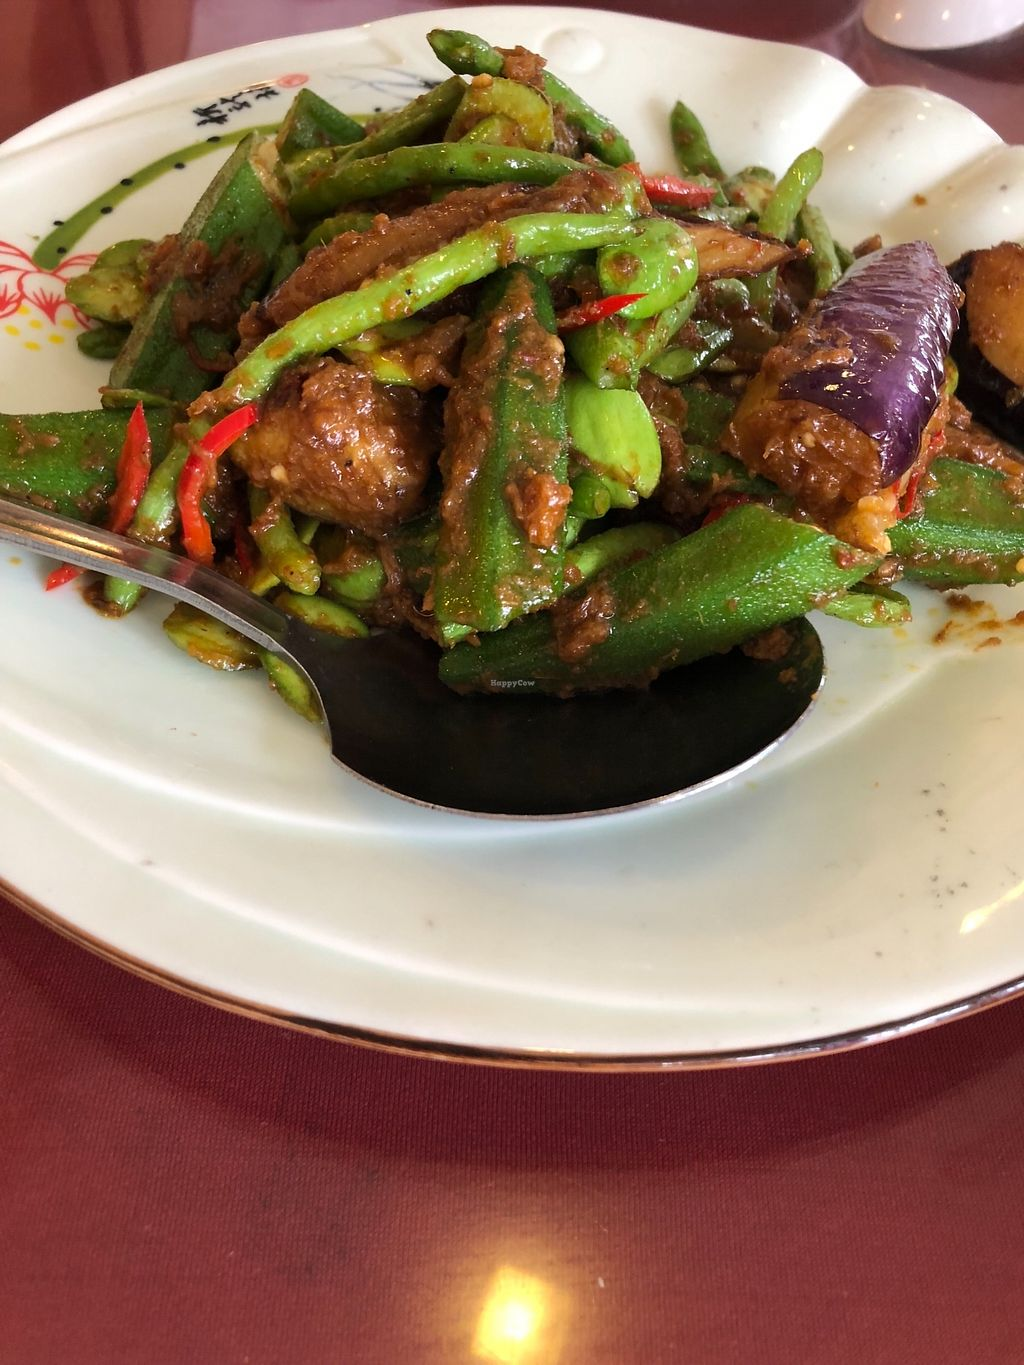 """Photo of Great Nature Enterprise  by <a href=""""/members/profile/AmyLeySzeThoo"""">AmyLeySzeThoo</a> <br/>Sambal Brinjal, Lady Finger, Petai and Long Bean <br/> February 20, 2018  - <a href='/contact/abuse/image/52703/361543'>Report</a>"""